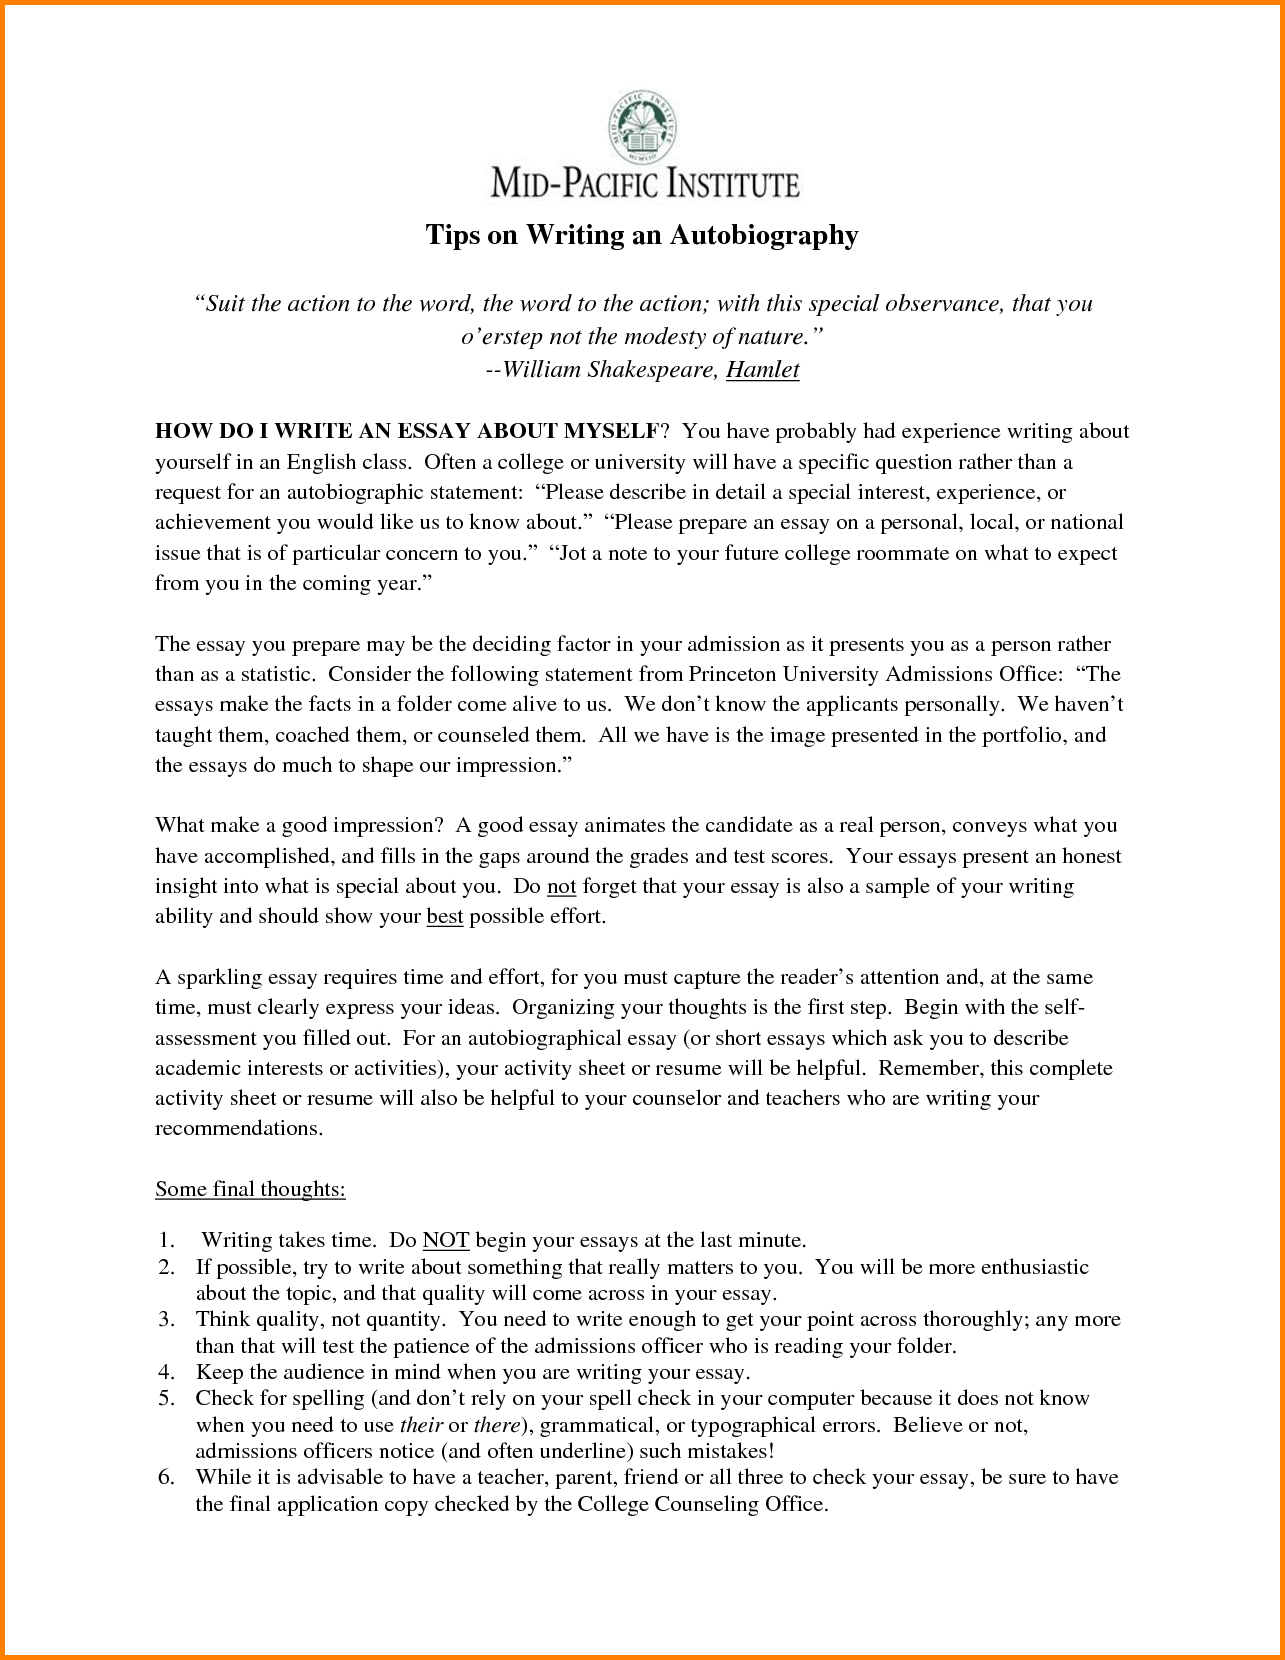 013 Best Solutions Of Tips On Writing Narrative Essay How To Start College Spectacular Write Application Outline Breathtaking An Argumentative Example About Yourself For Scholarship Analysis A Book Full